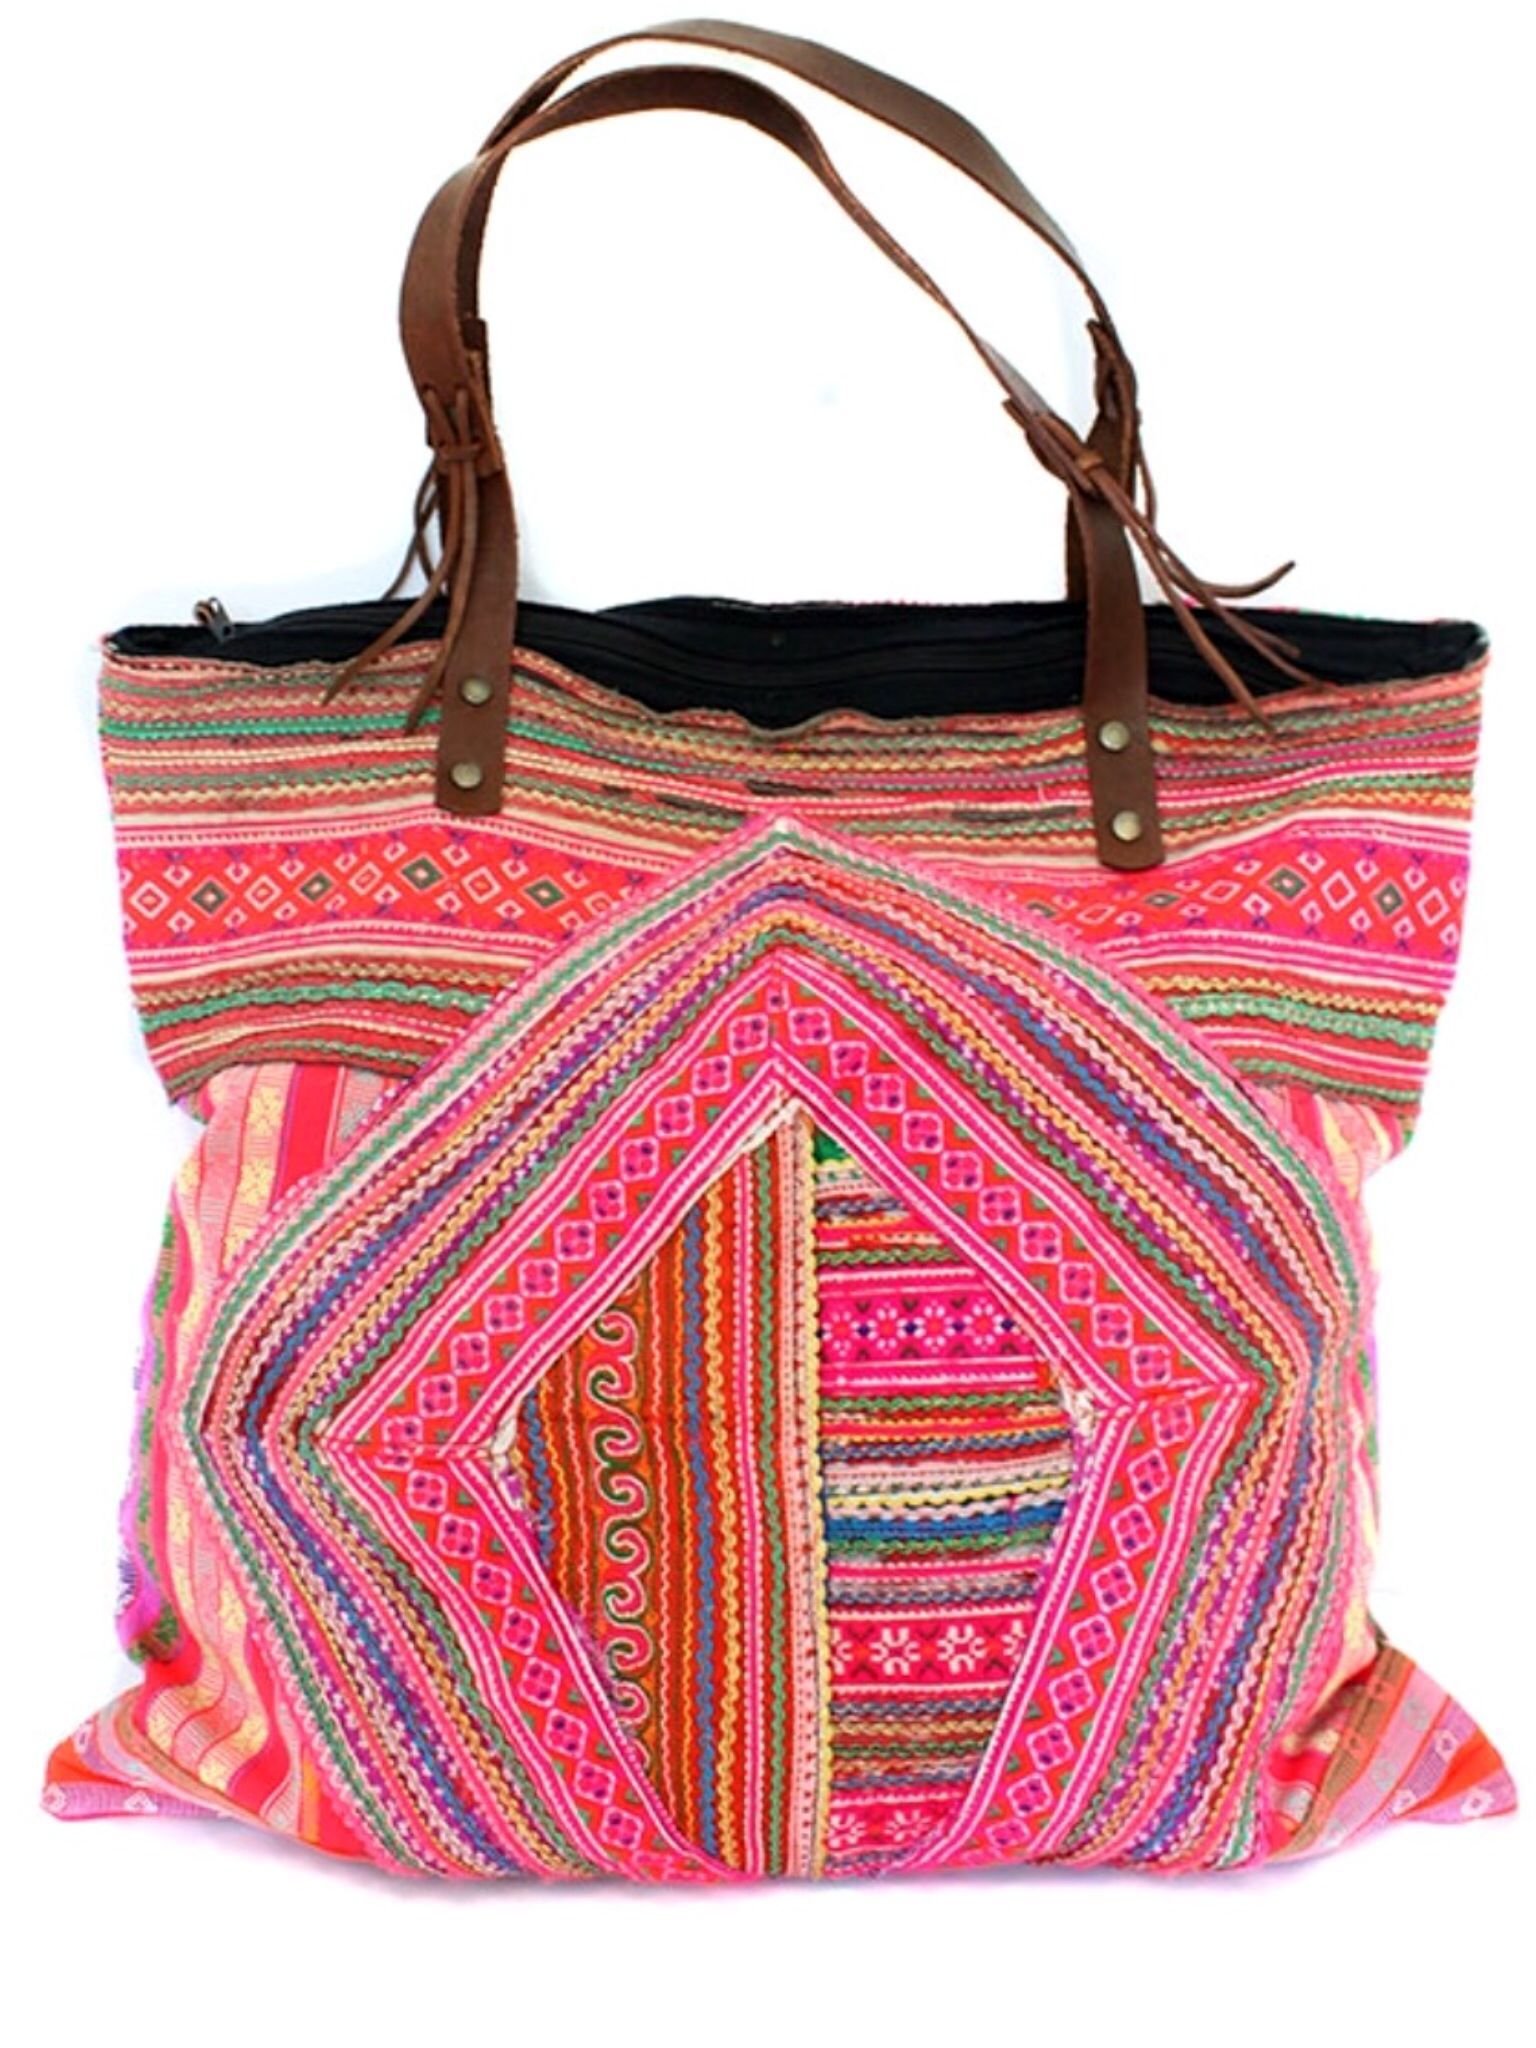 e6f741bc4 Boho beach bag #bohemian ☮k☮ #boho #bohéme | ✌ boho is an ...